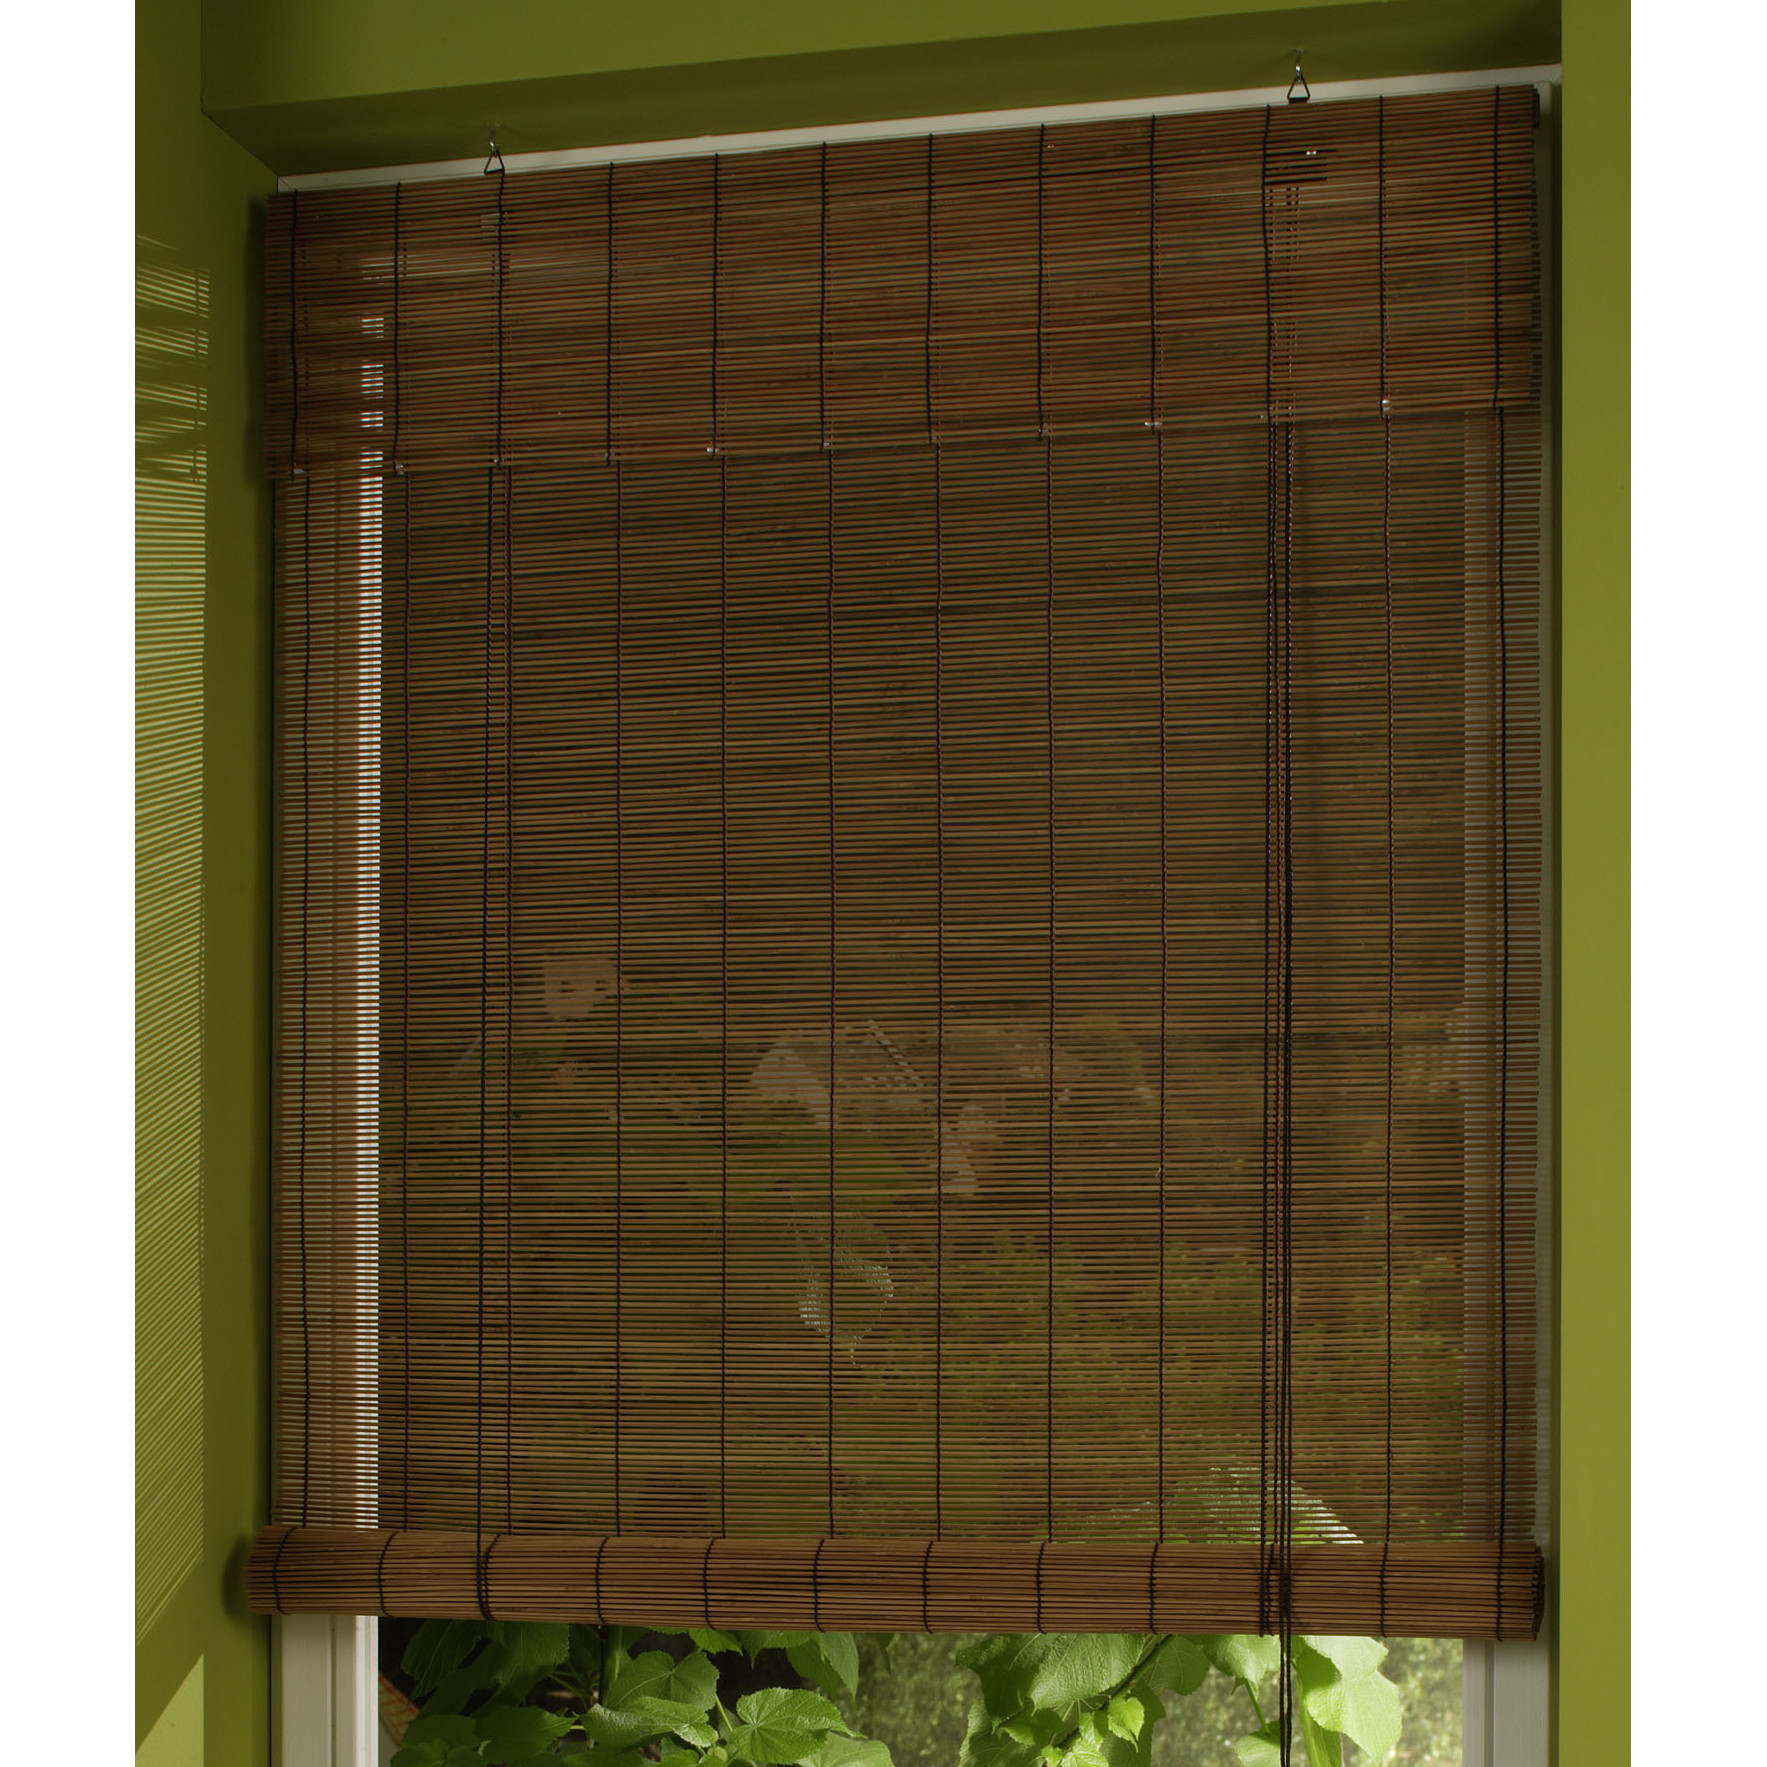 Excellent Menards Window Blinds for Best Window Blind Ideas: Tv Stands Menards | Menards Sale | Menards Window Blinds